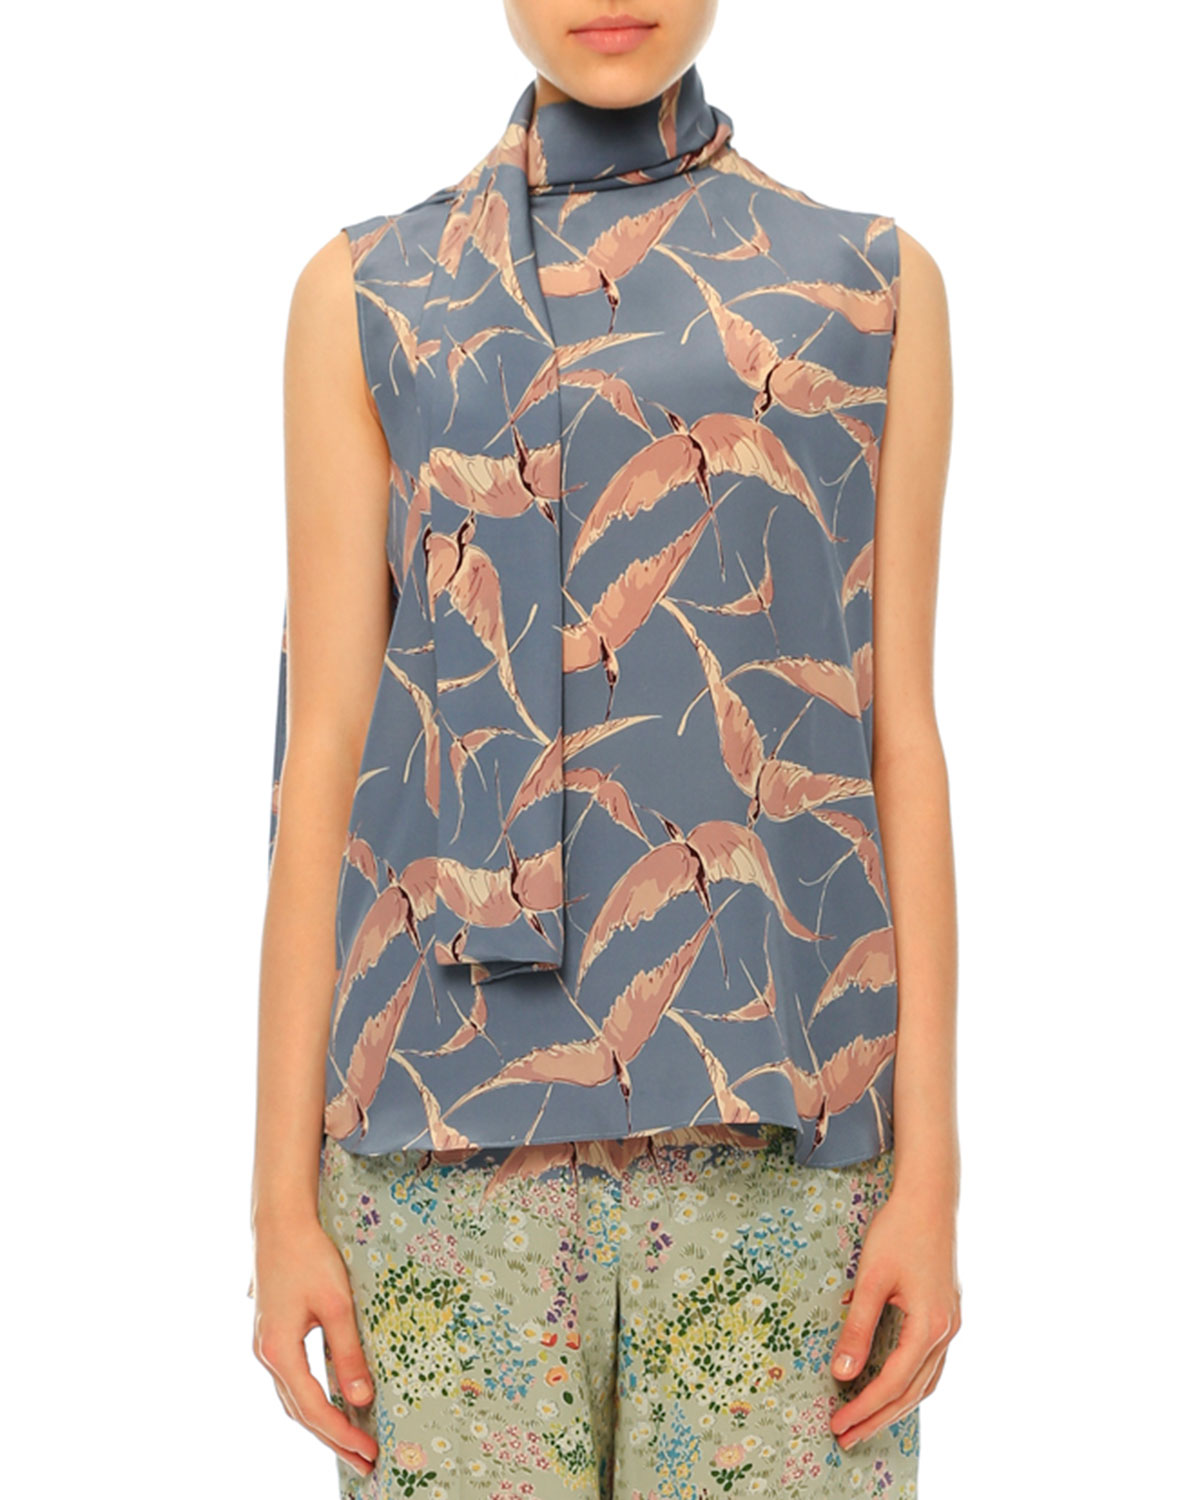 Sleeveless Bird-Print Tie-Neck Blouse, Multi Colors